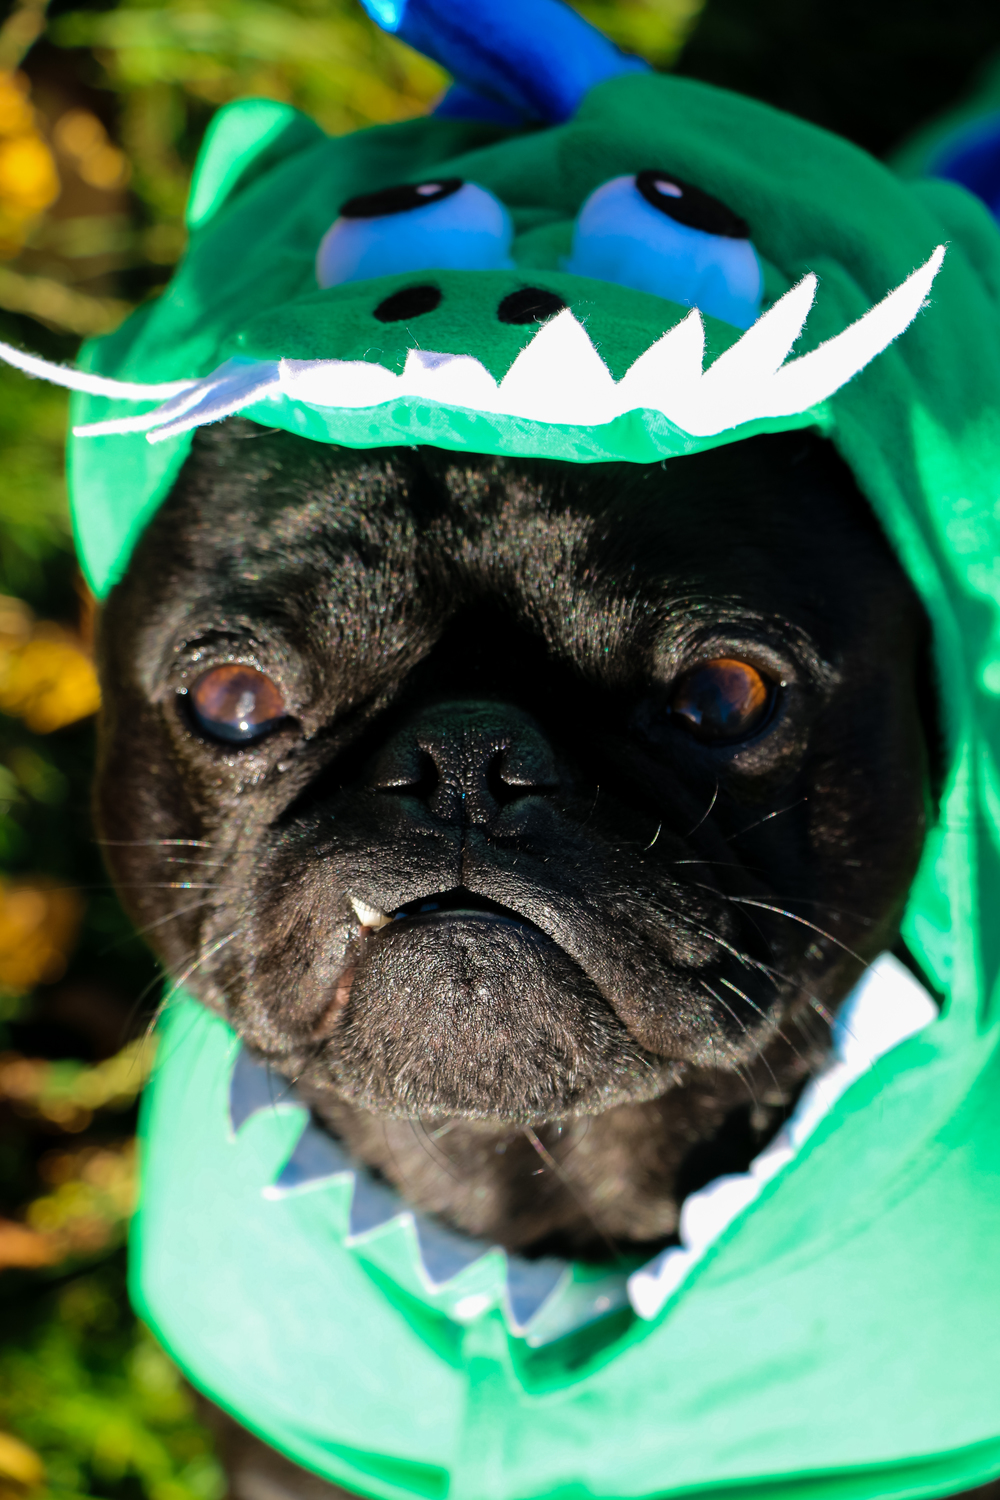 and here we have the rarely seen pugosaurus...famous for bulgy eyes and adorable but extremely dangerous snaggletooth